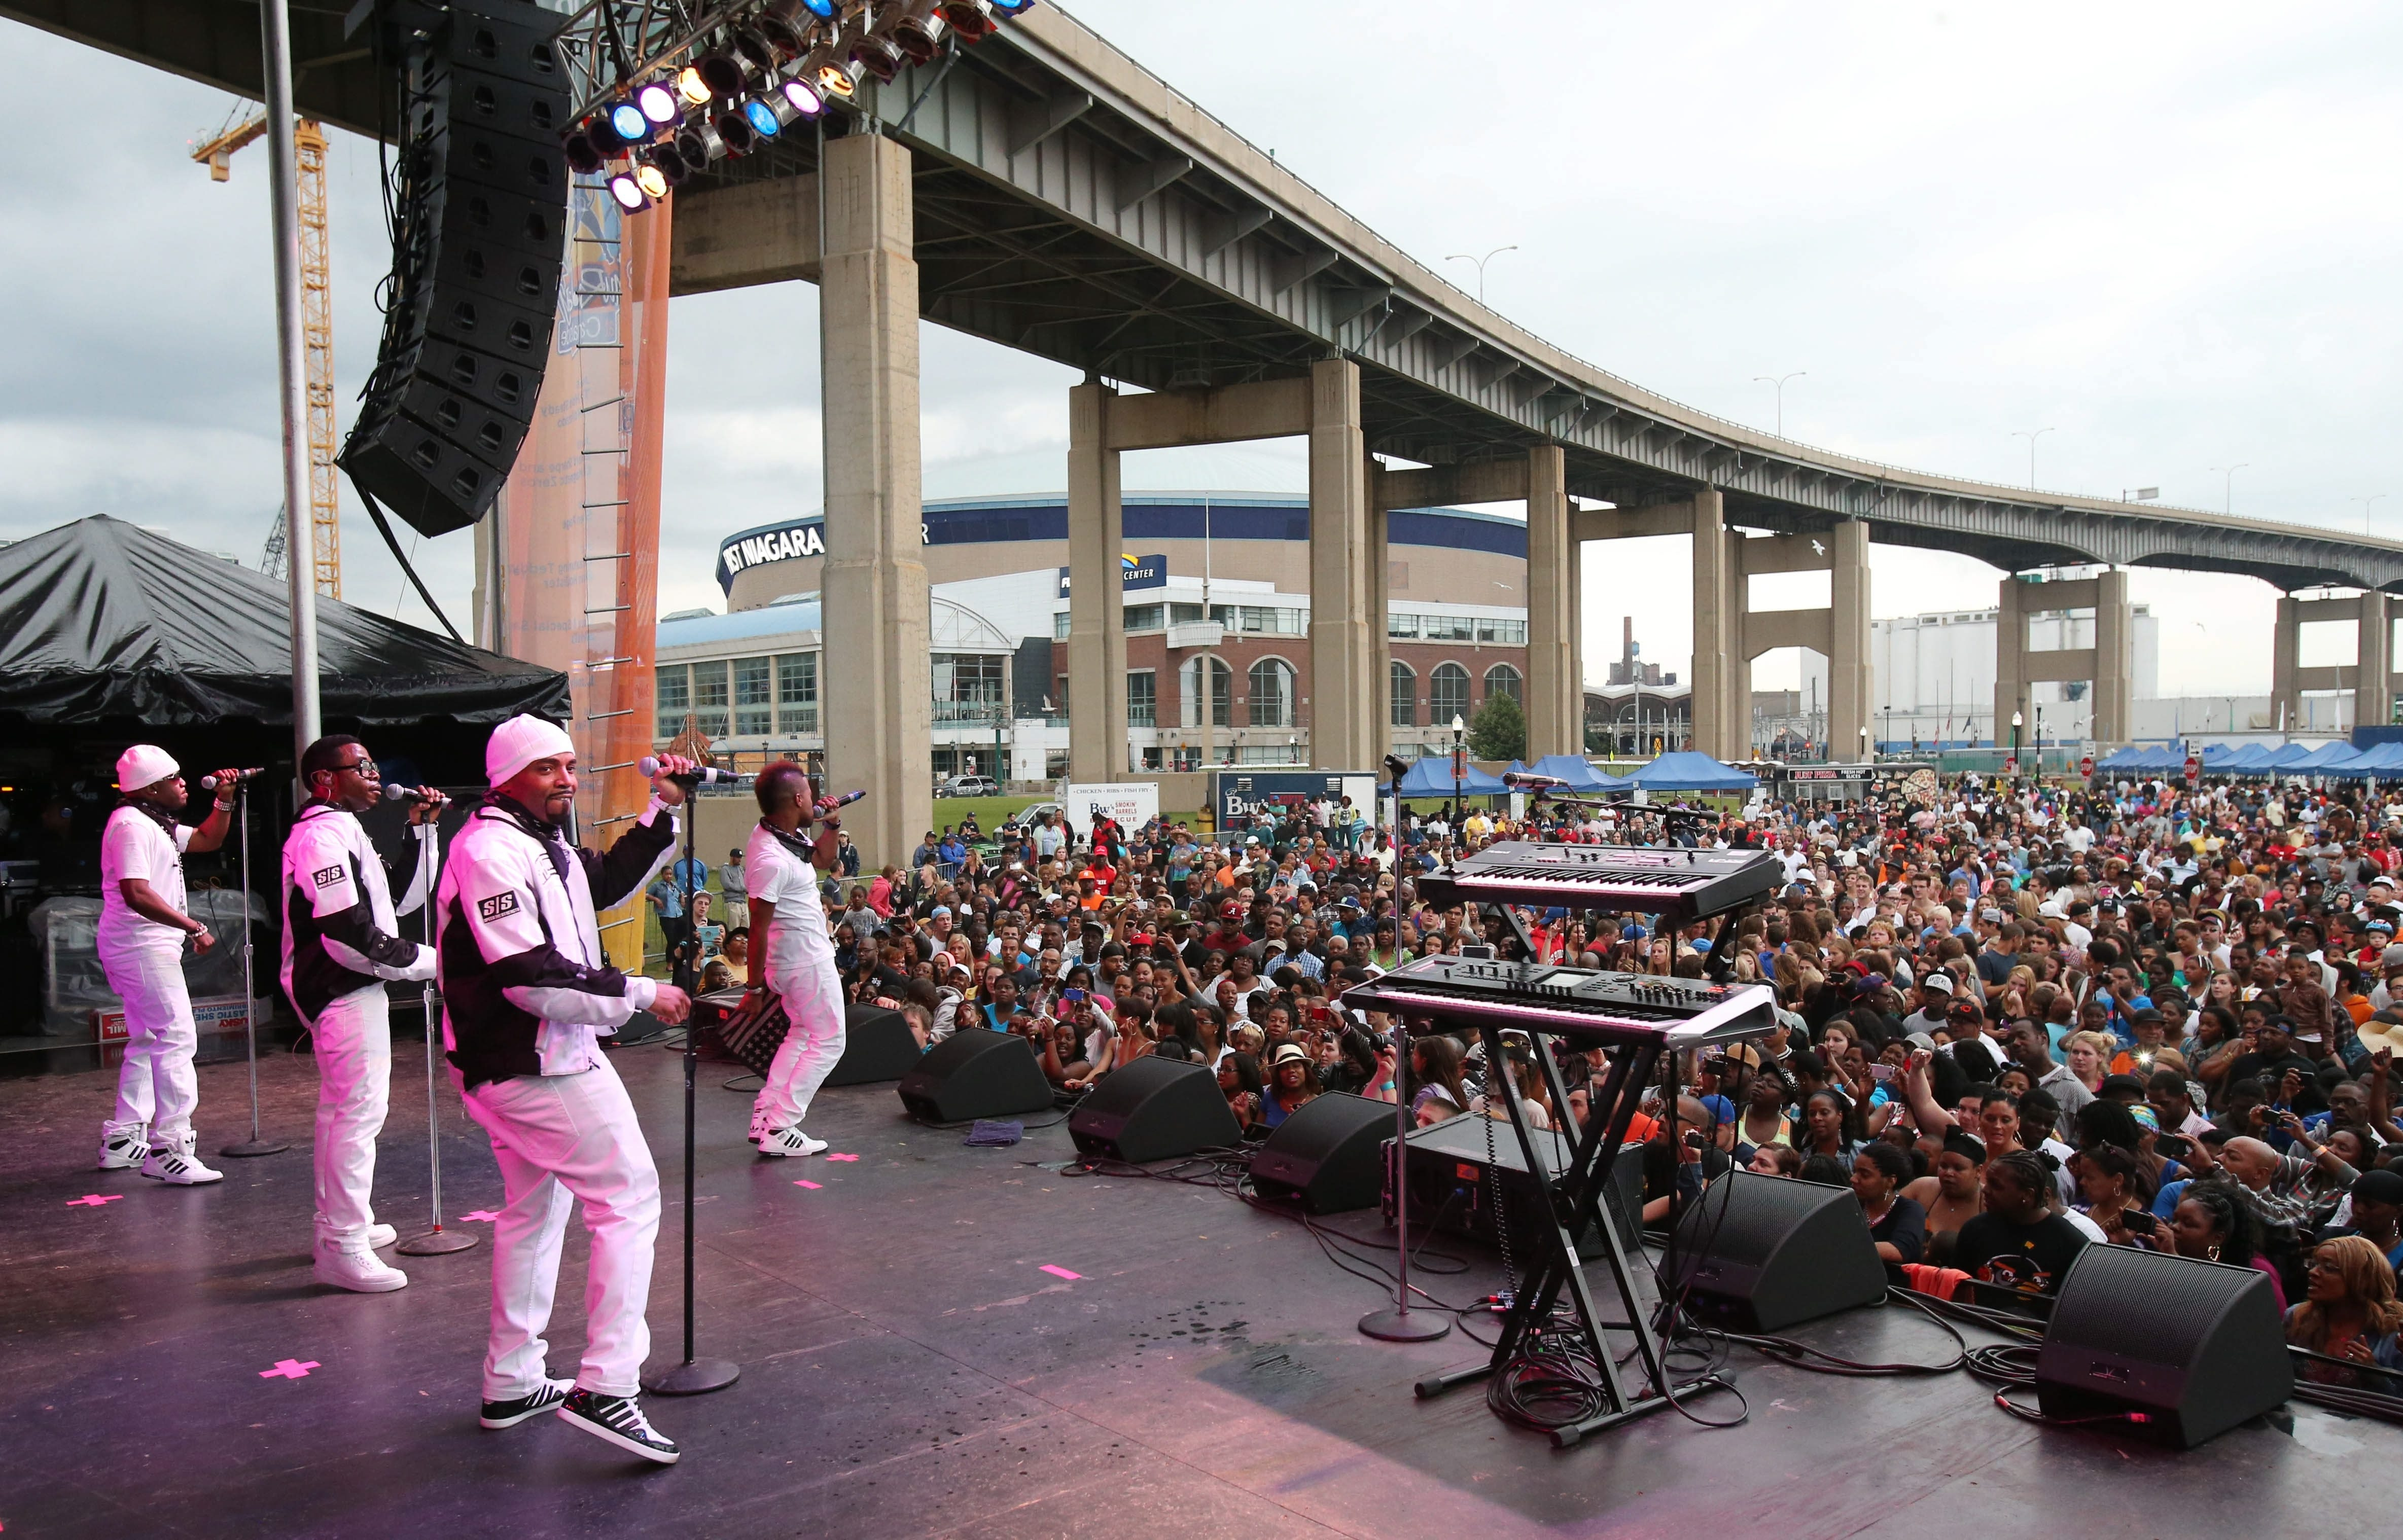 Teddy Riley, wearing white cap in the foreground, at his band's concert last June 27 in the Thursday at Canalside series, which is now in the hands of Global Spectrum.